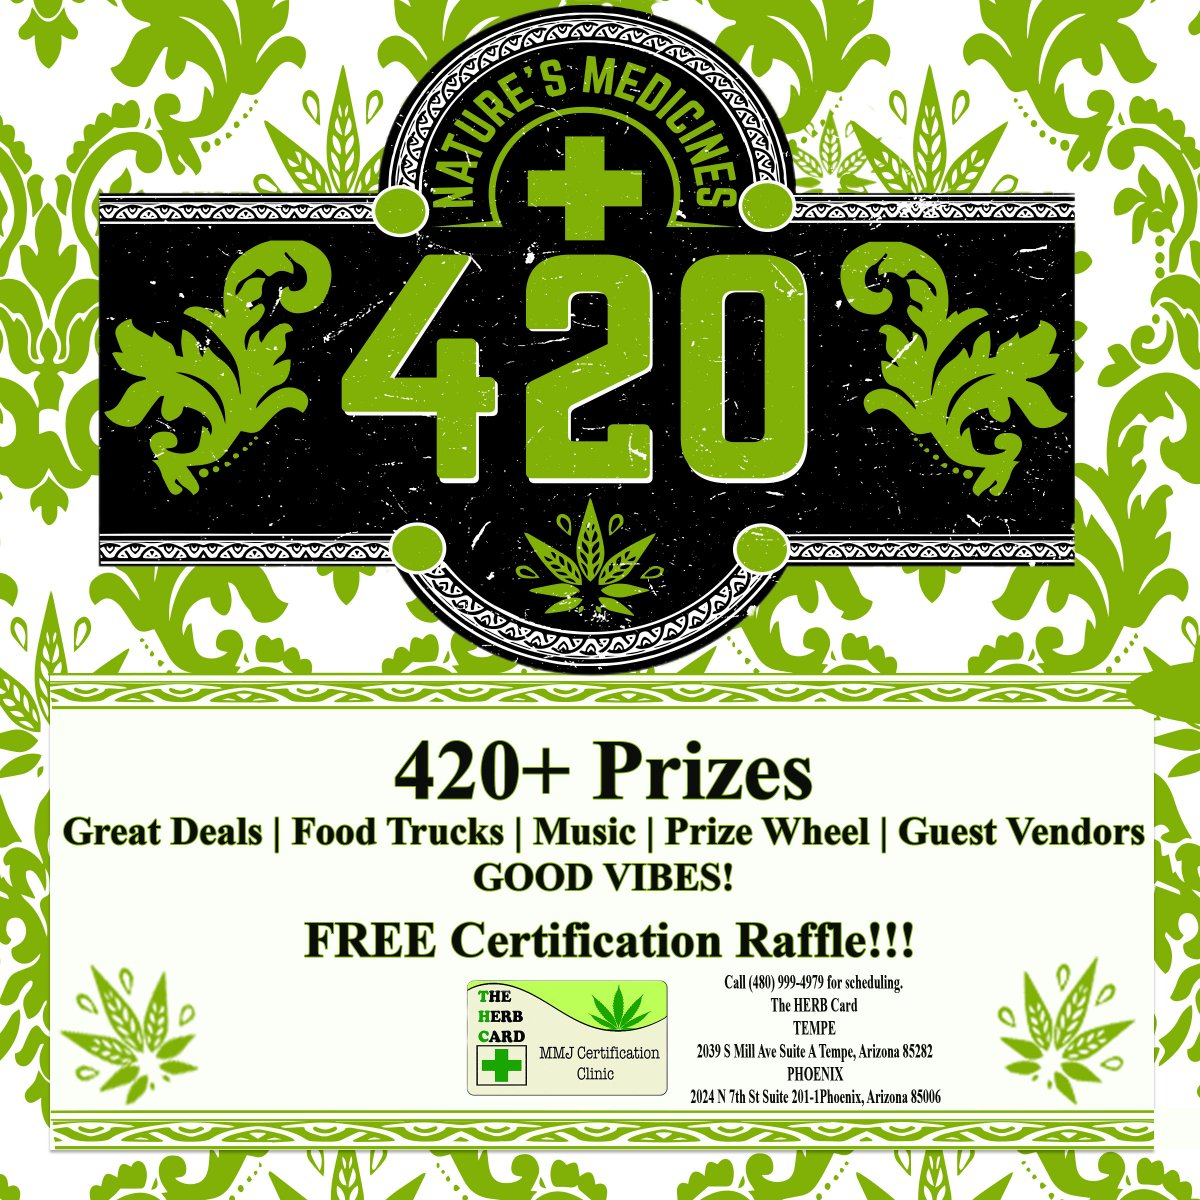 Natures Medicines On Twitter 10 Days Until 420 Stop By Natures